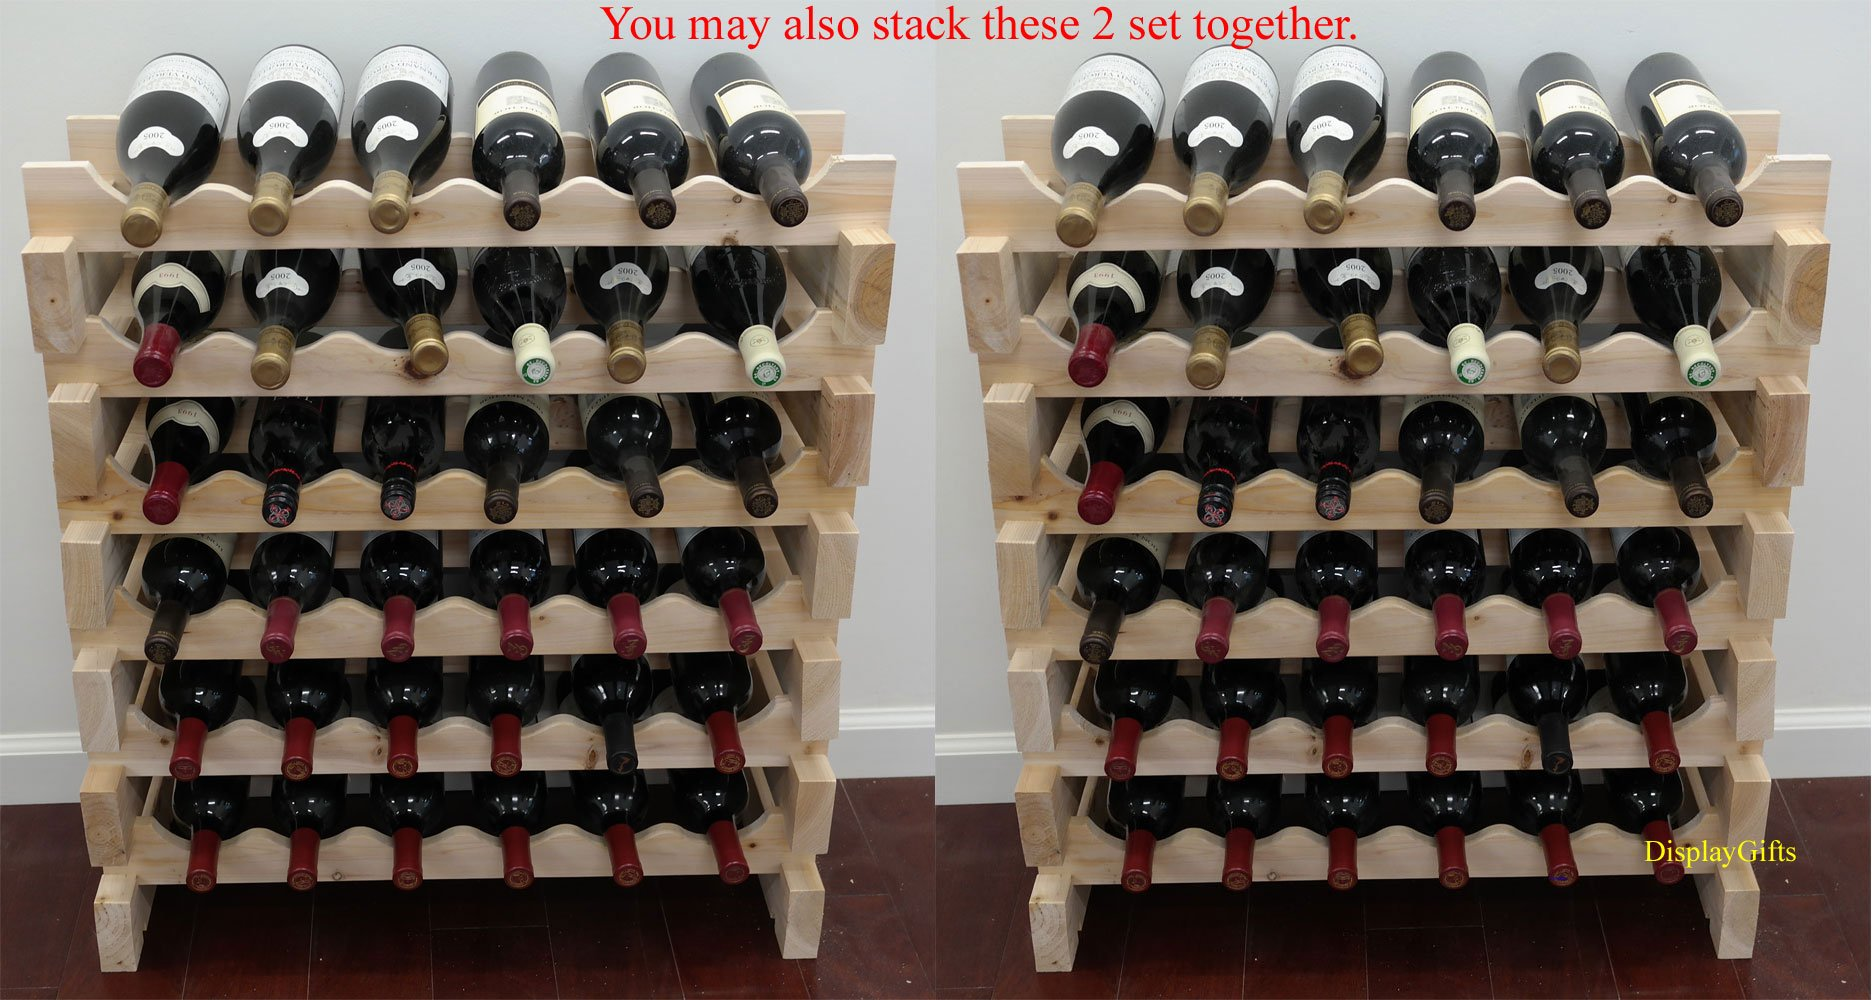 Stackable Storage Wine Rack Stand, Wobble-Free, 72 Bottle Capacity, 6 X 12 Row by DisplayGifts (Image #2)